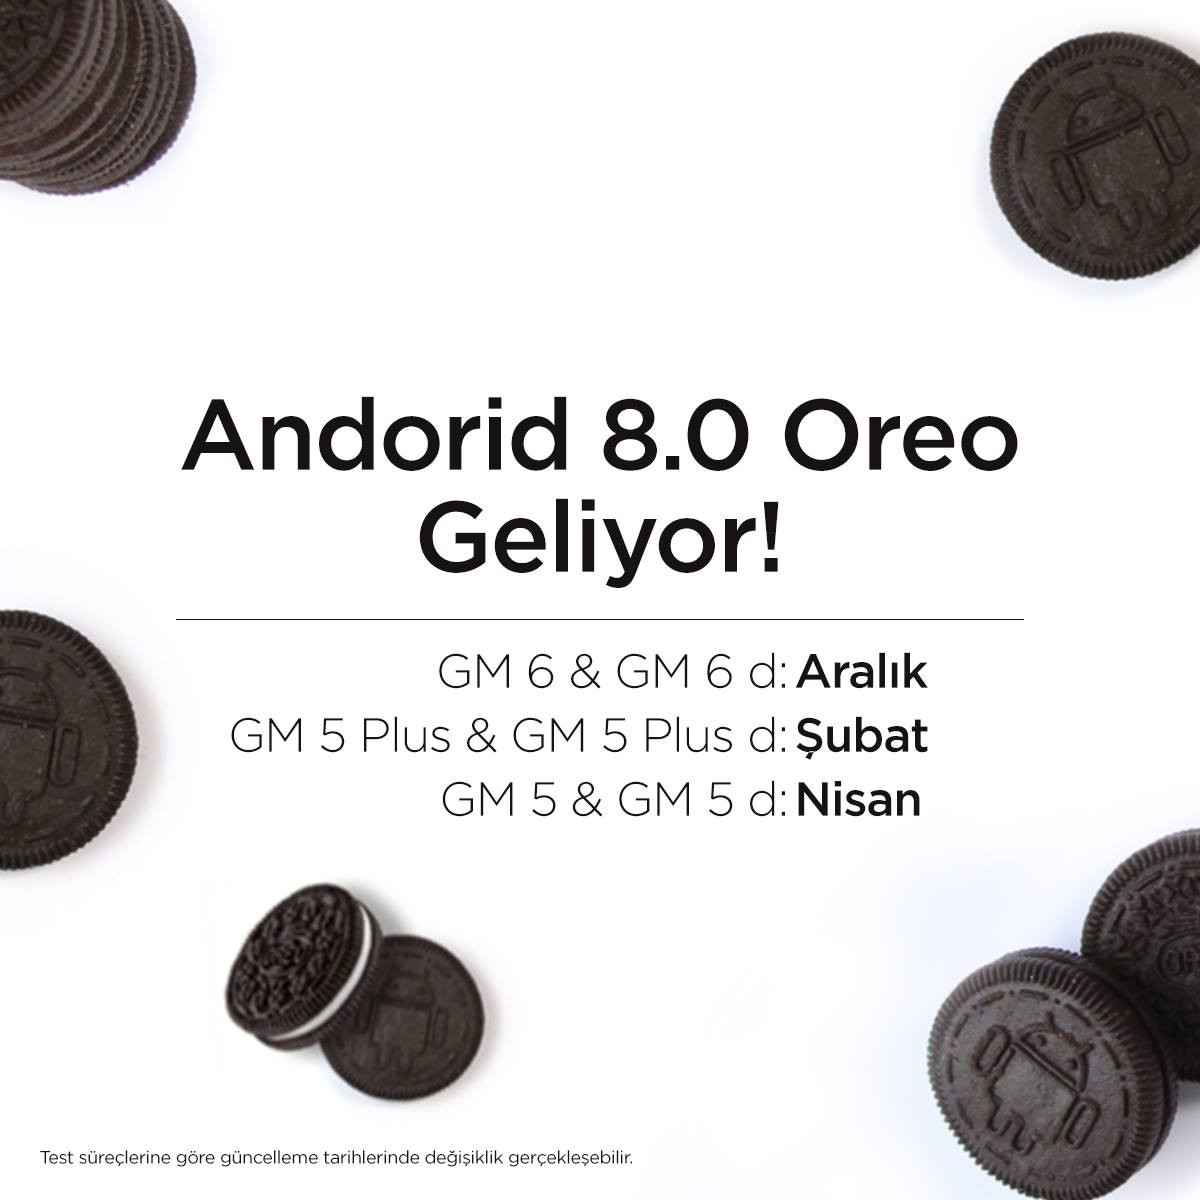 1509538417_general-mobile-android-oreo.jpg